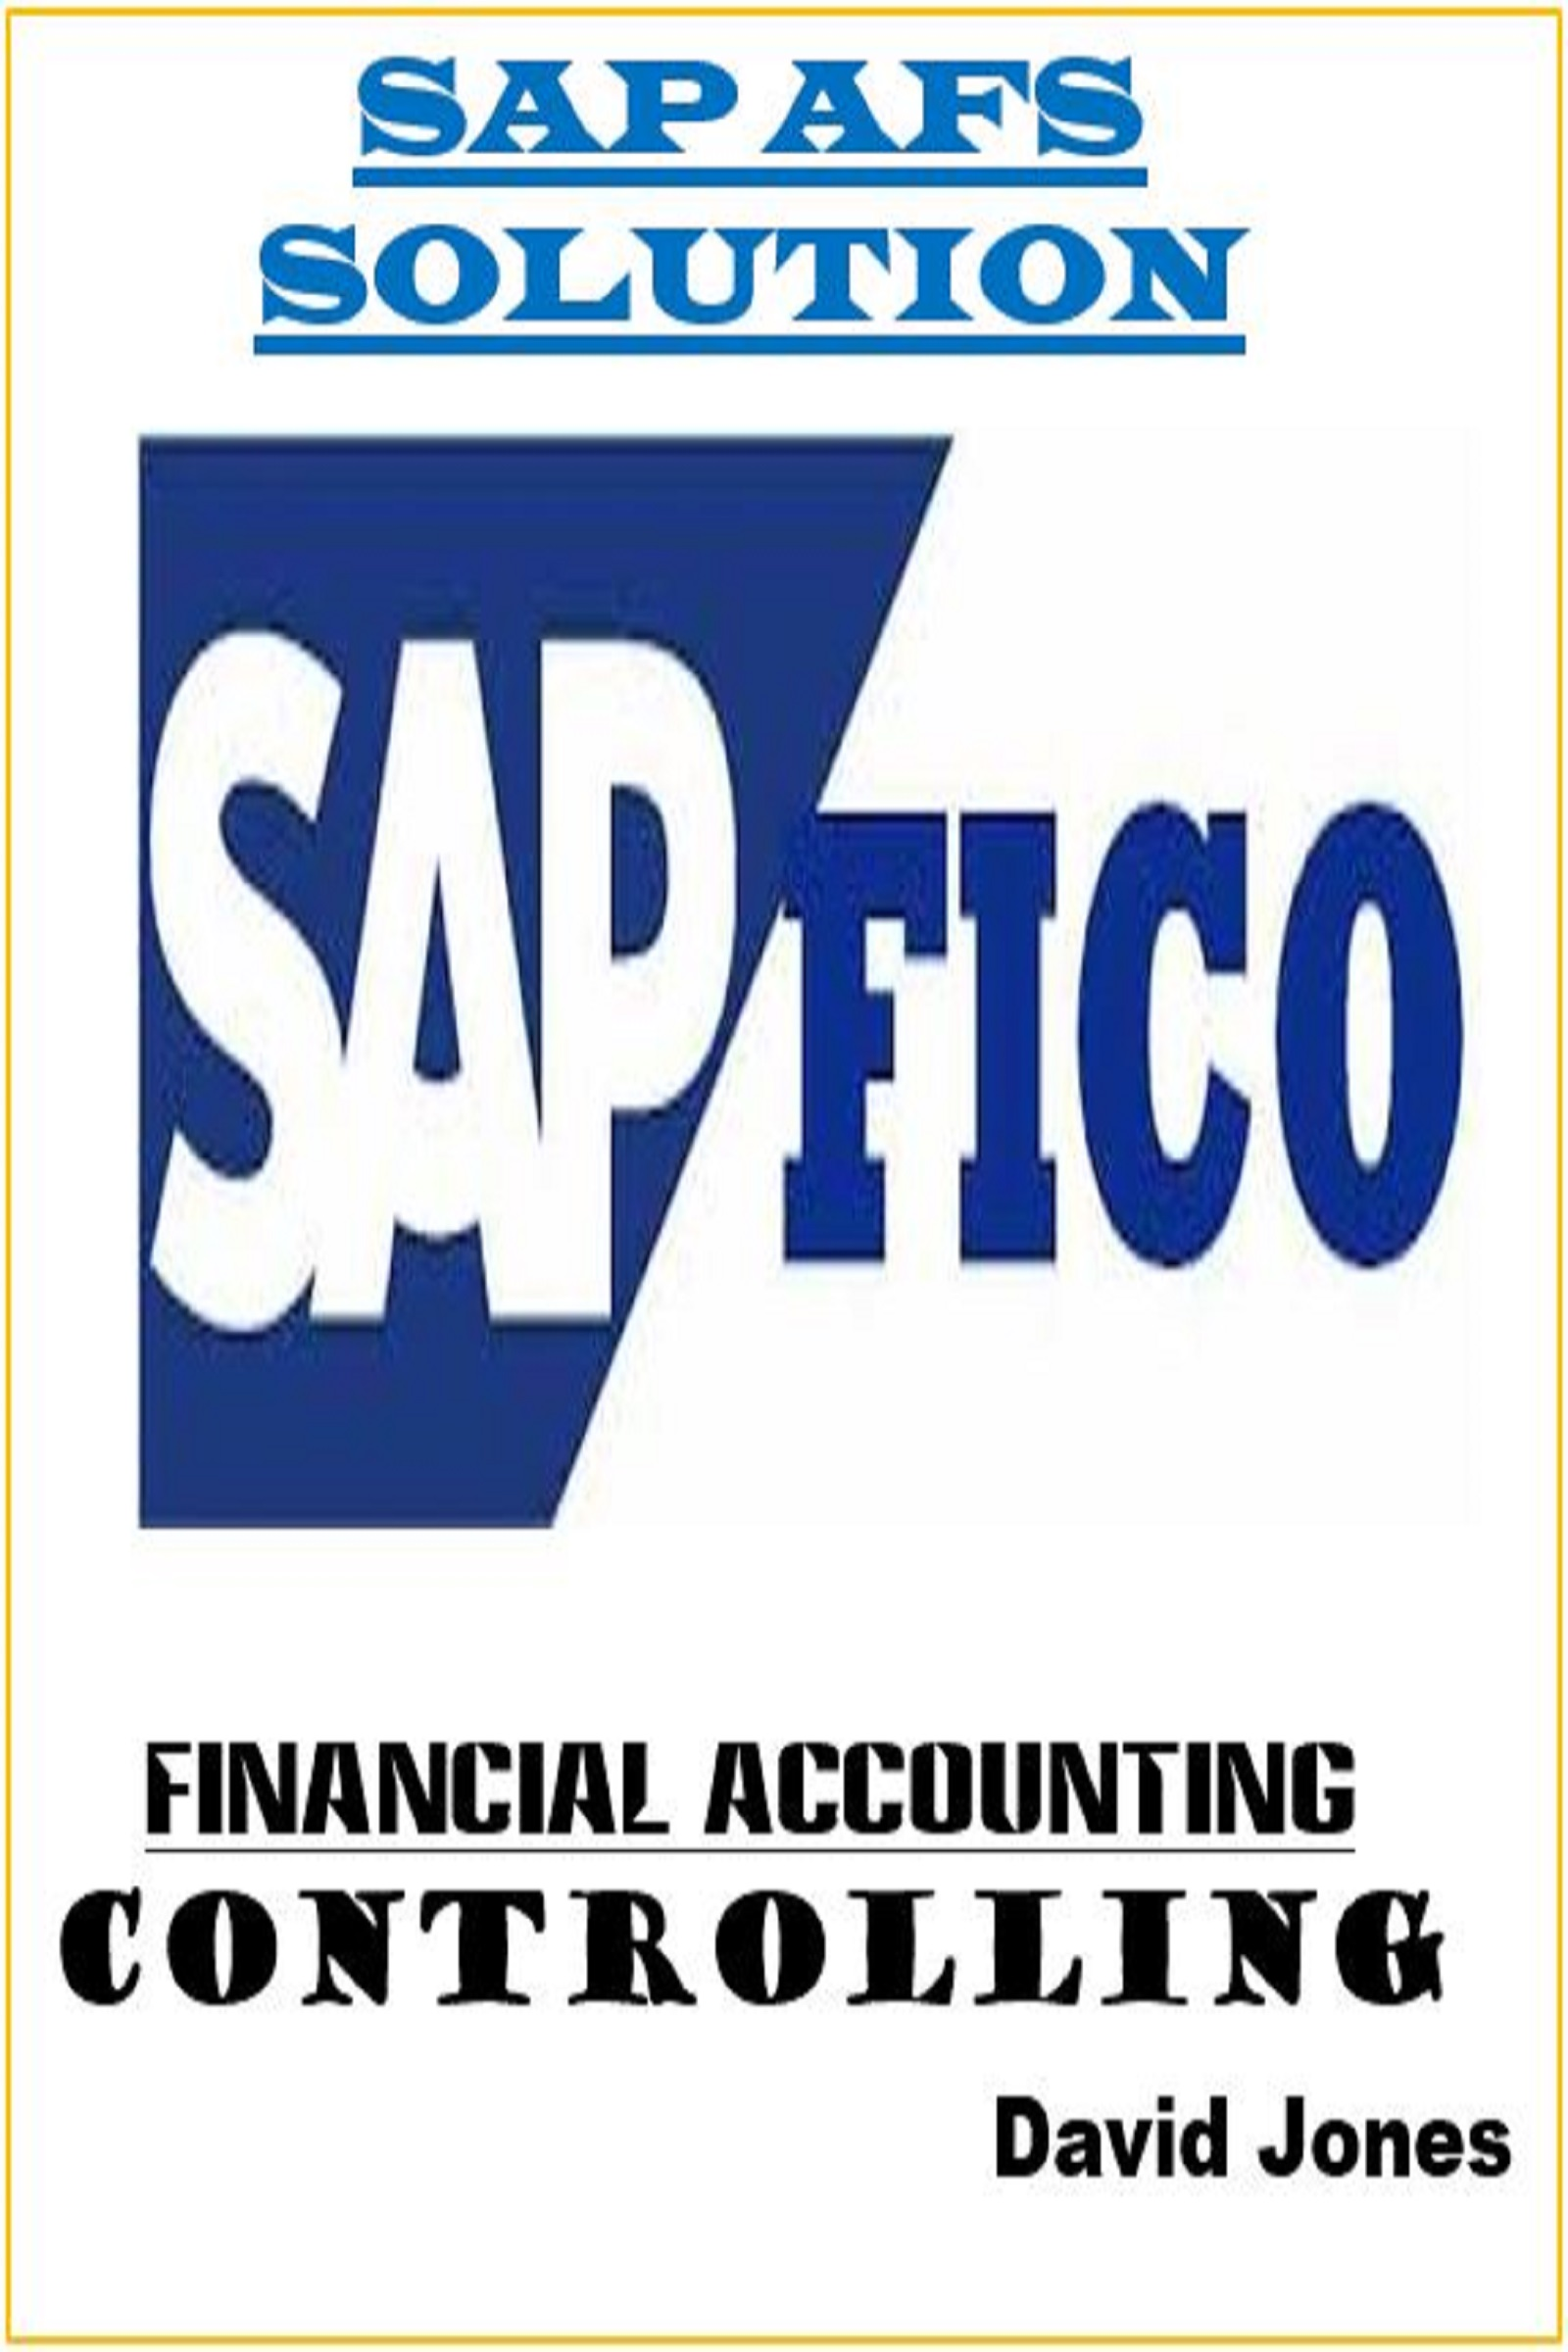 Modules Financial Accounting and Controlling In SAP AFS Solution, an Ebook  by David Jones